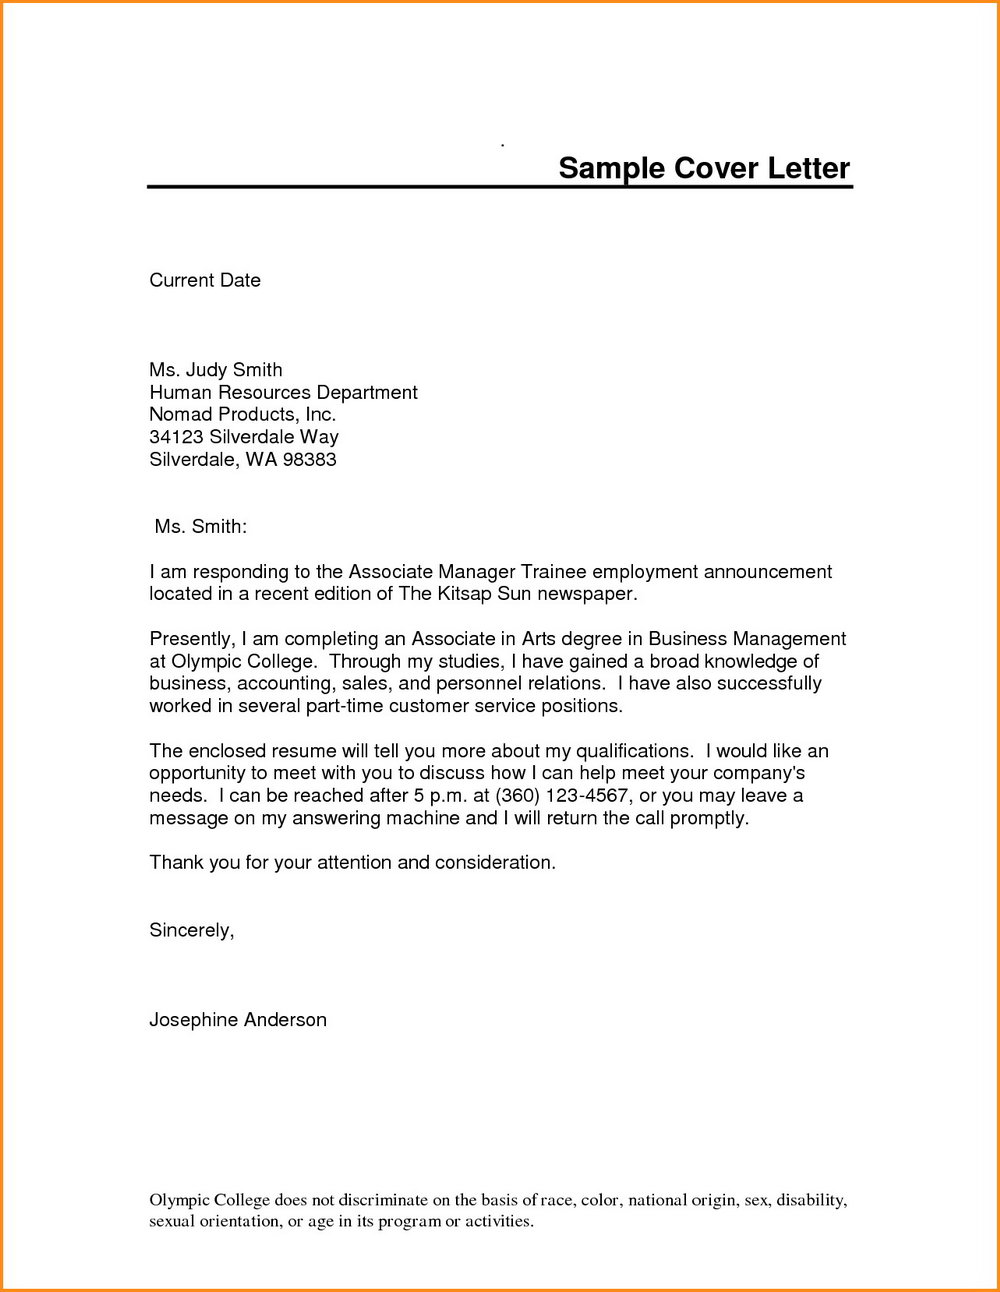 Free Resume Cover Letter Template Word